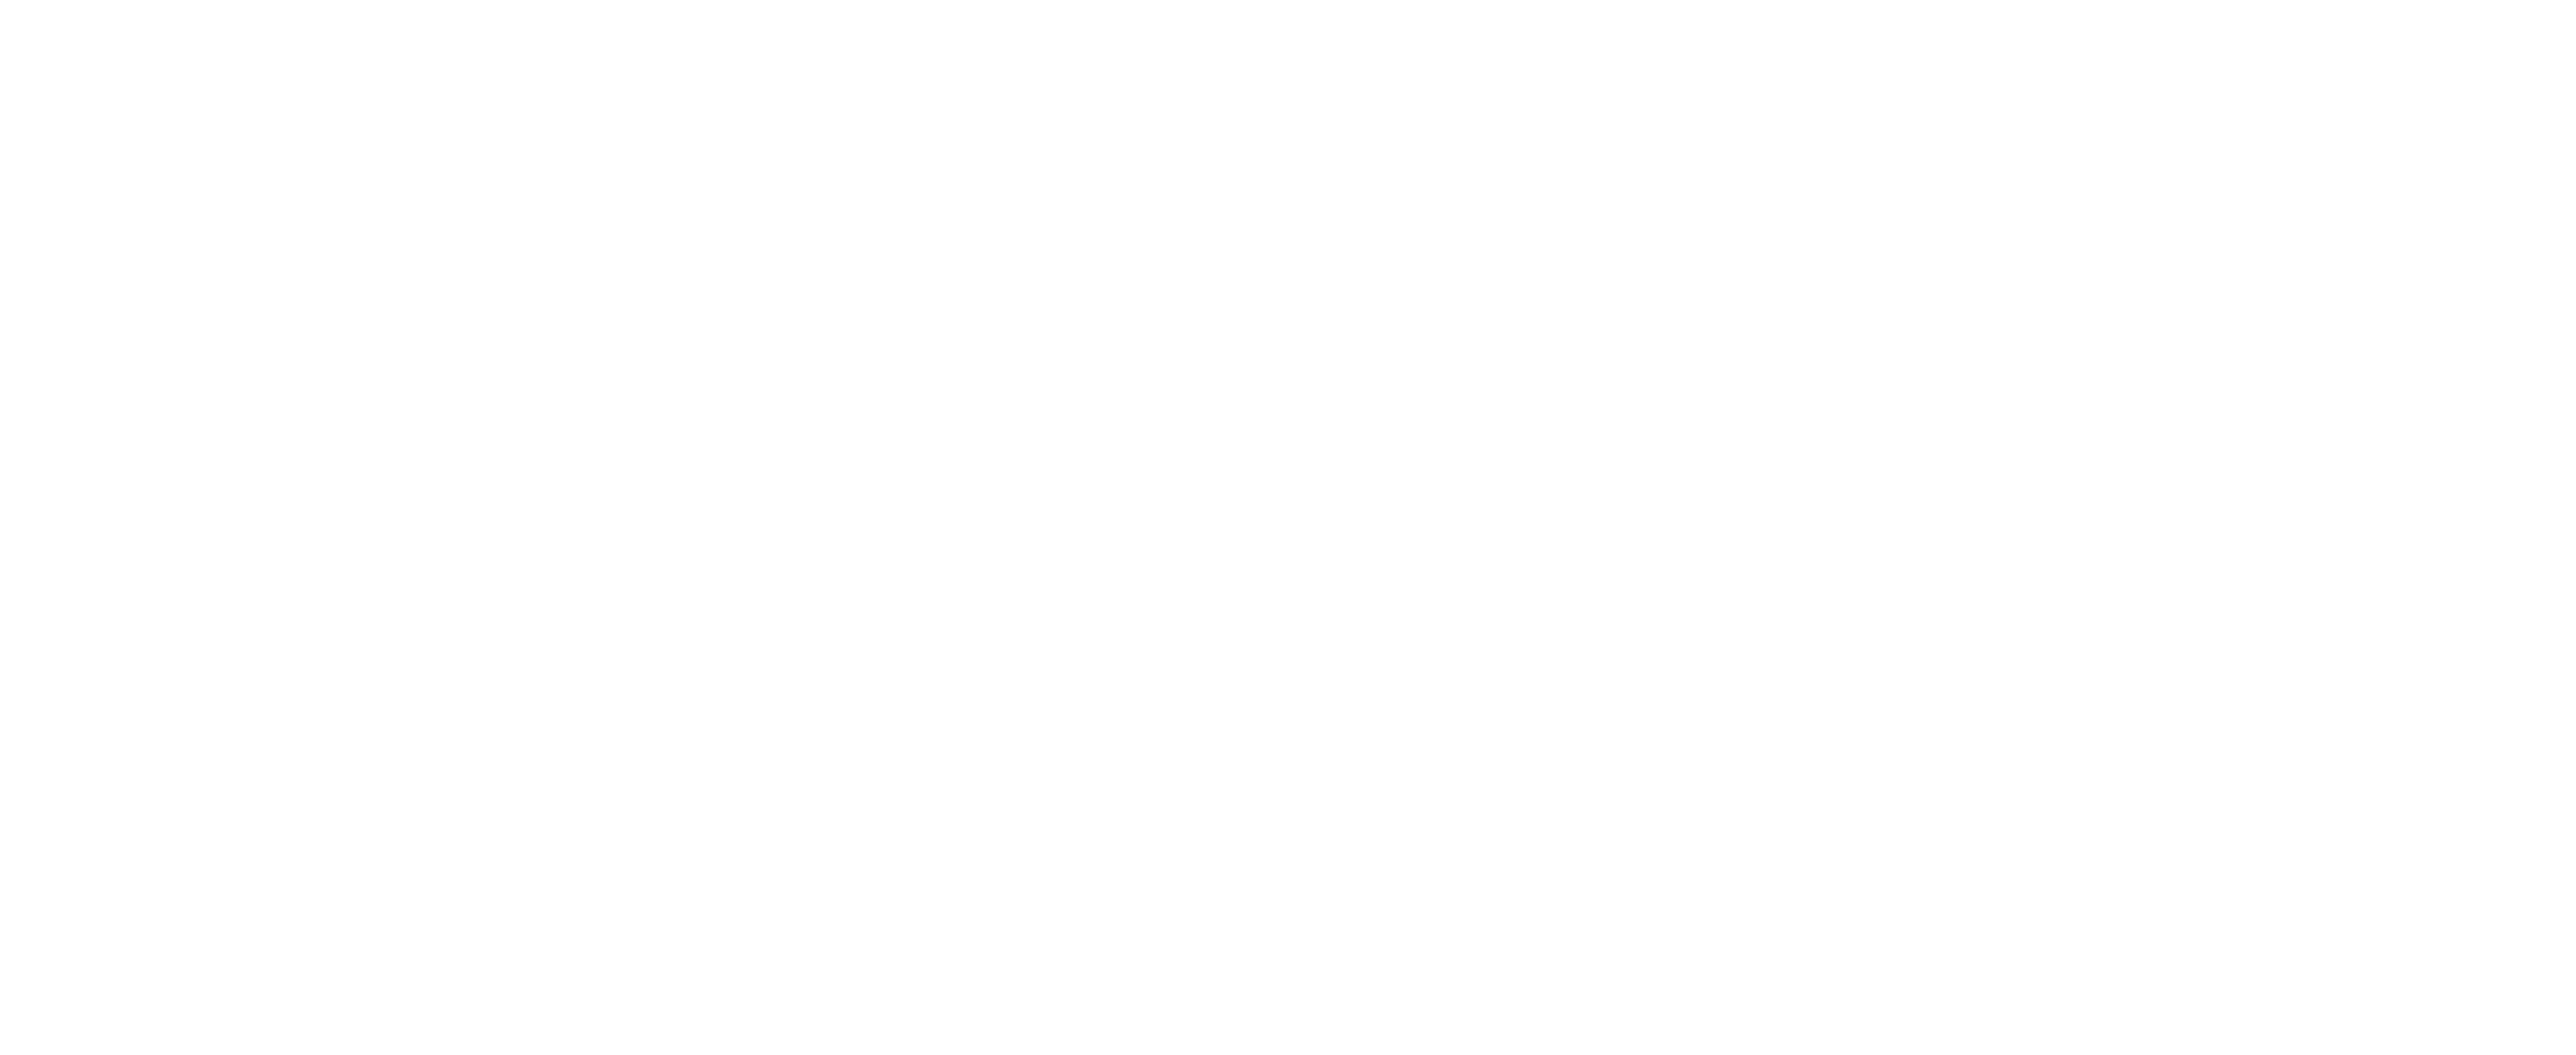 American Psychiatric Association, Annual Meeting, May 1-3, 2021, Finding Equity THrough Mind and Body